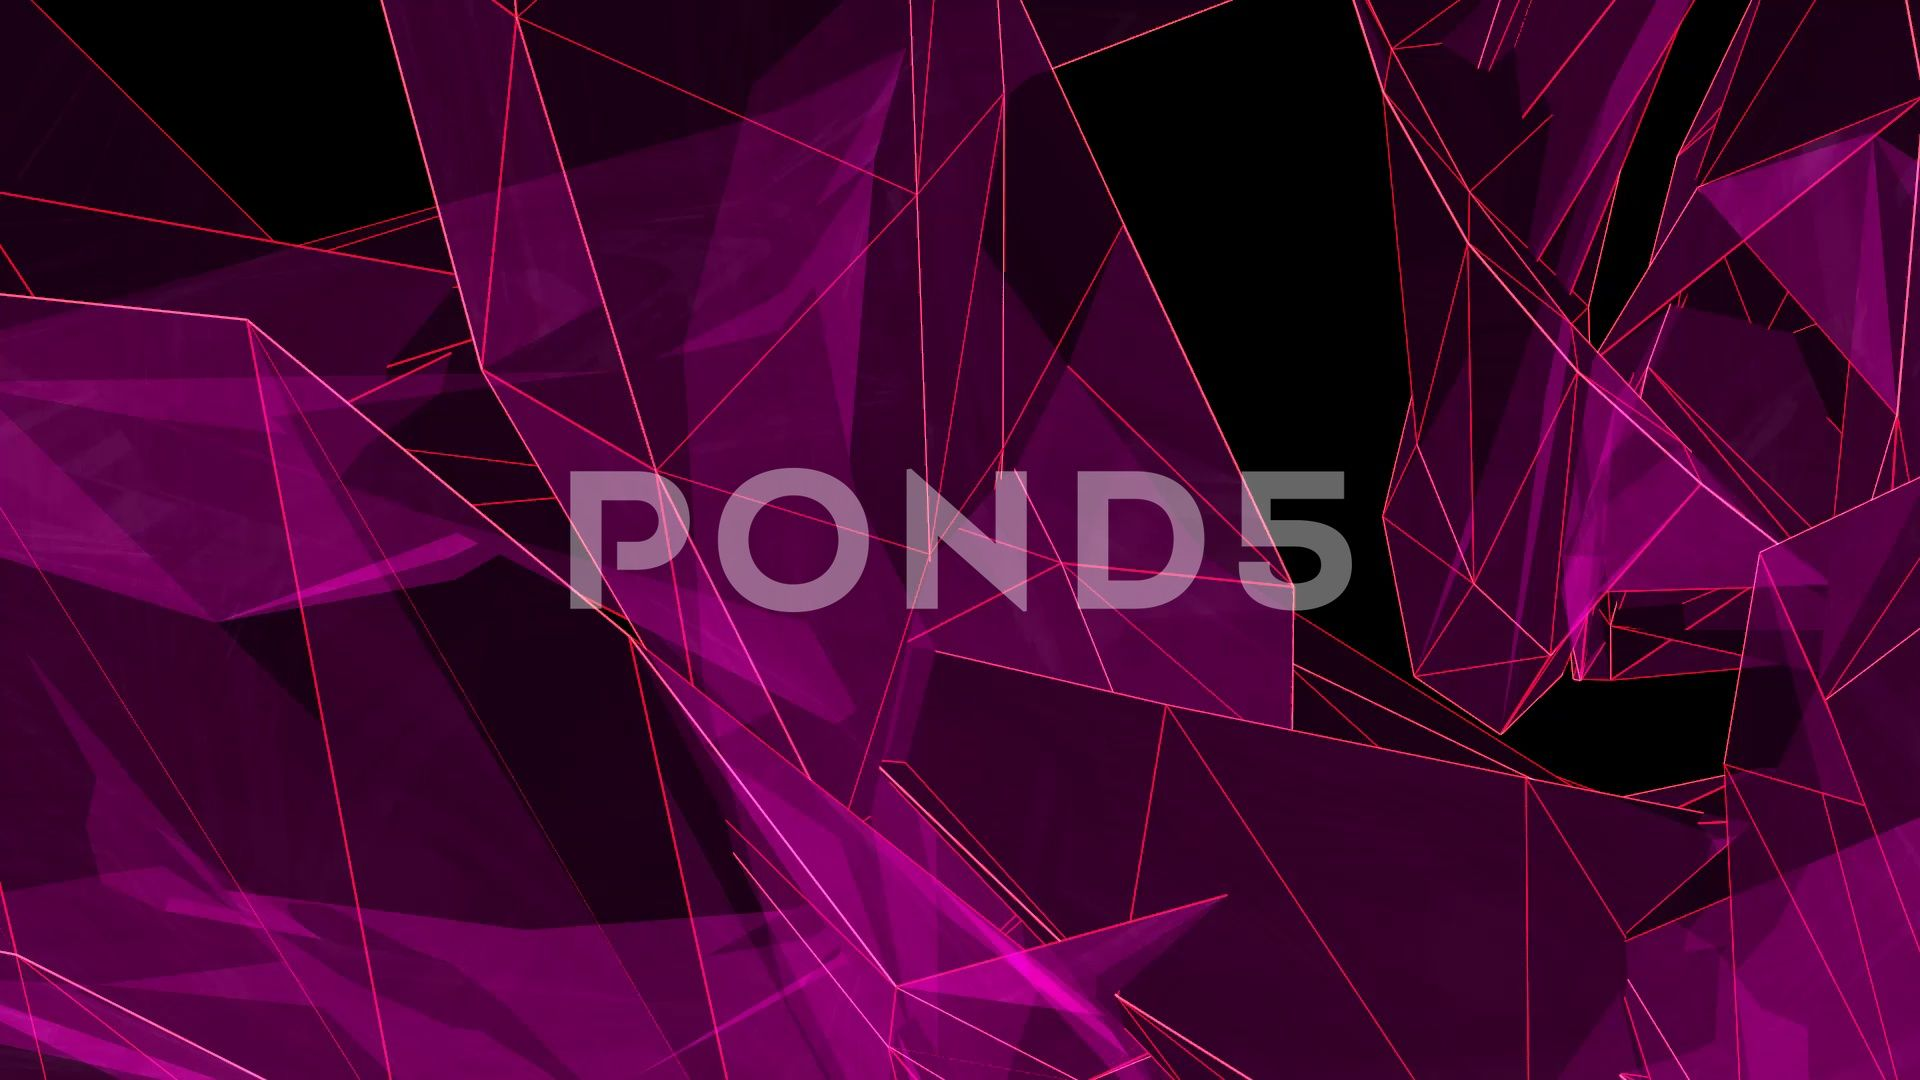 Background Texture Render Abstract Art Beautiful Effects Colors Intro Motion Stock Footage ,#Abstract#Art#Beautiful#Background